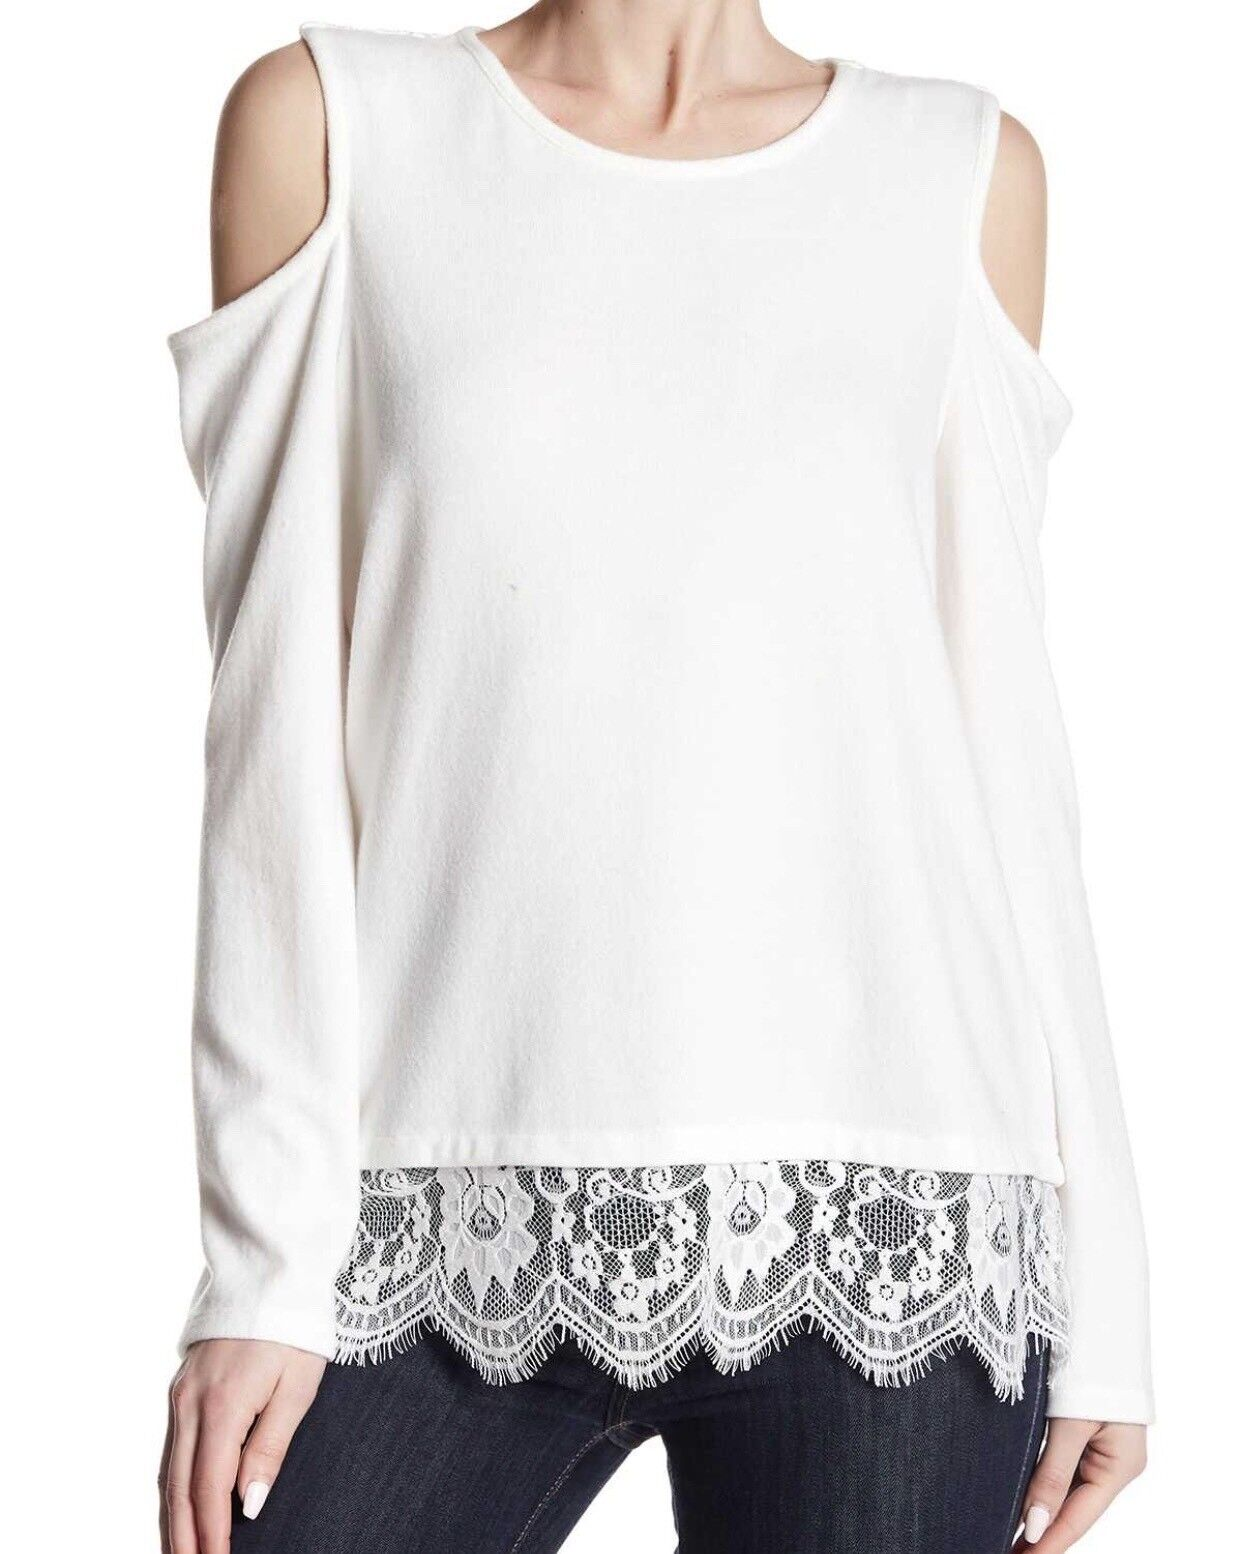 Vince Camuto Cold Shoulder Lace Trim Sweater Blouse Large Women Ivory New Light